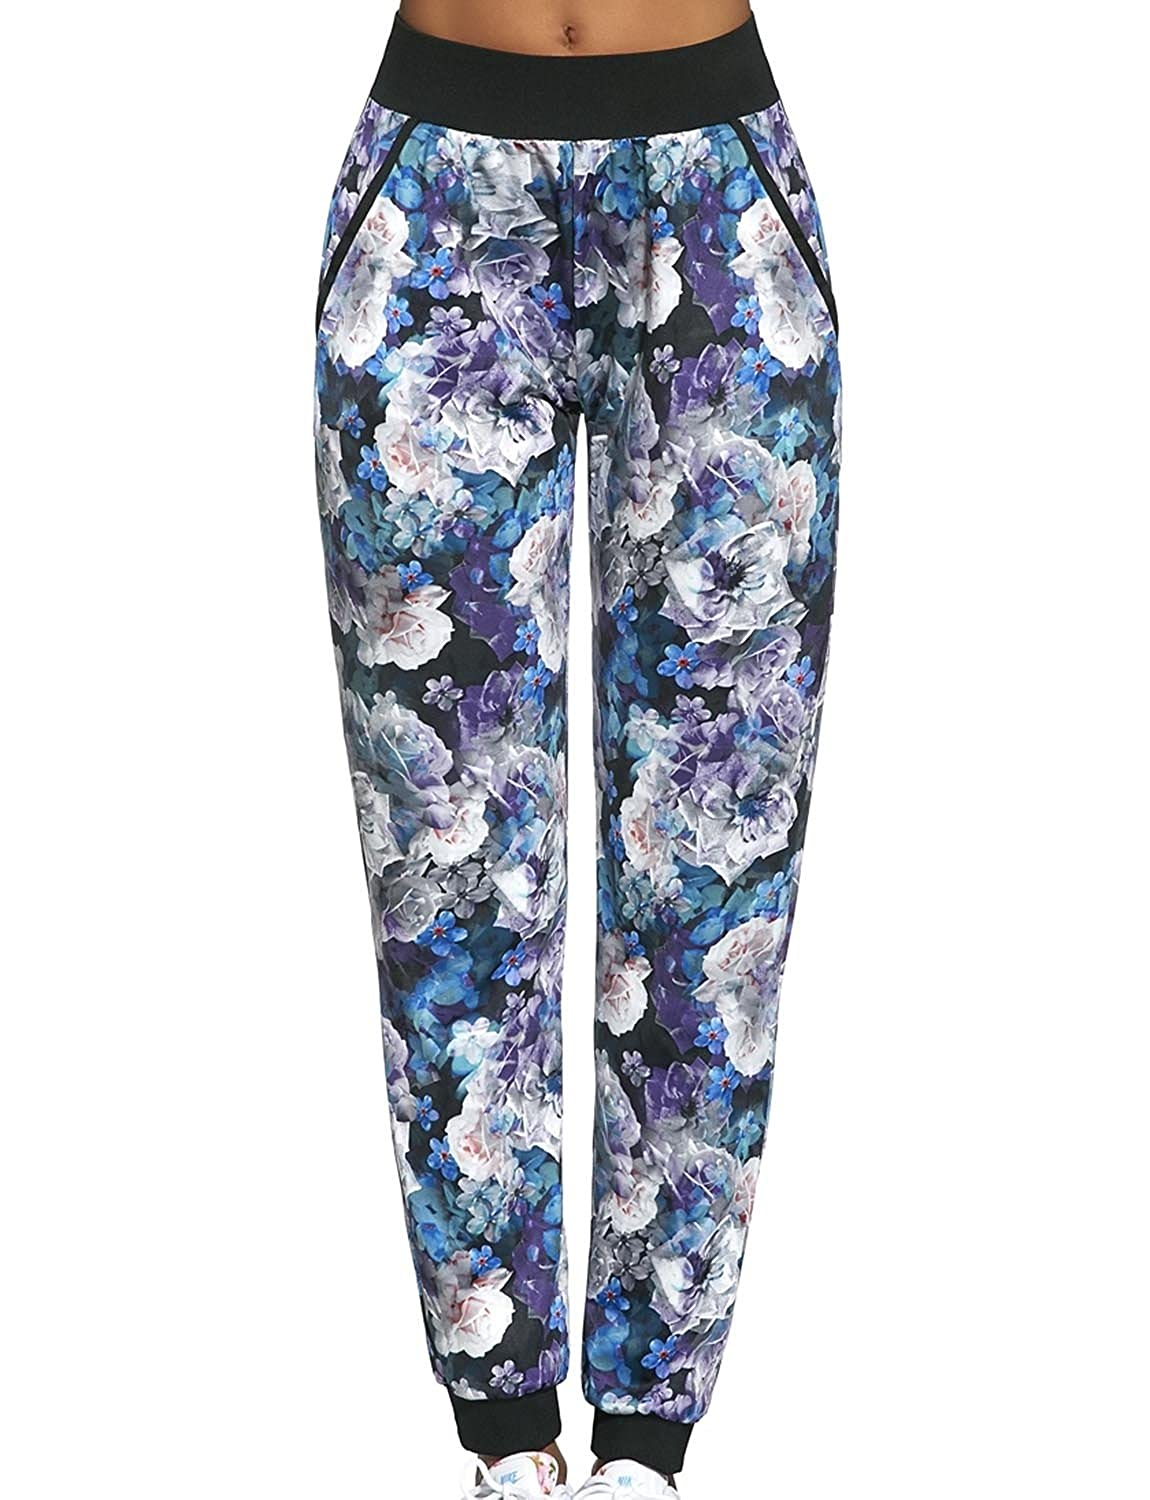 68202f661b3e8 Bas Bleu Chalice Women s Sports Trousers With Floral Pattern Regular Waist  With Pockets - Made In EU  Amazon.co.uk  Clothing